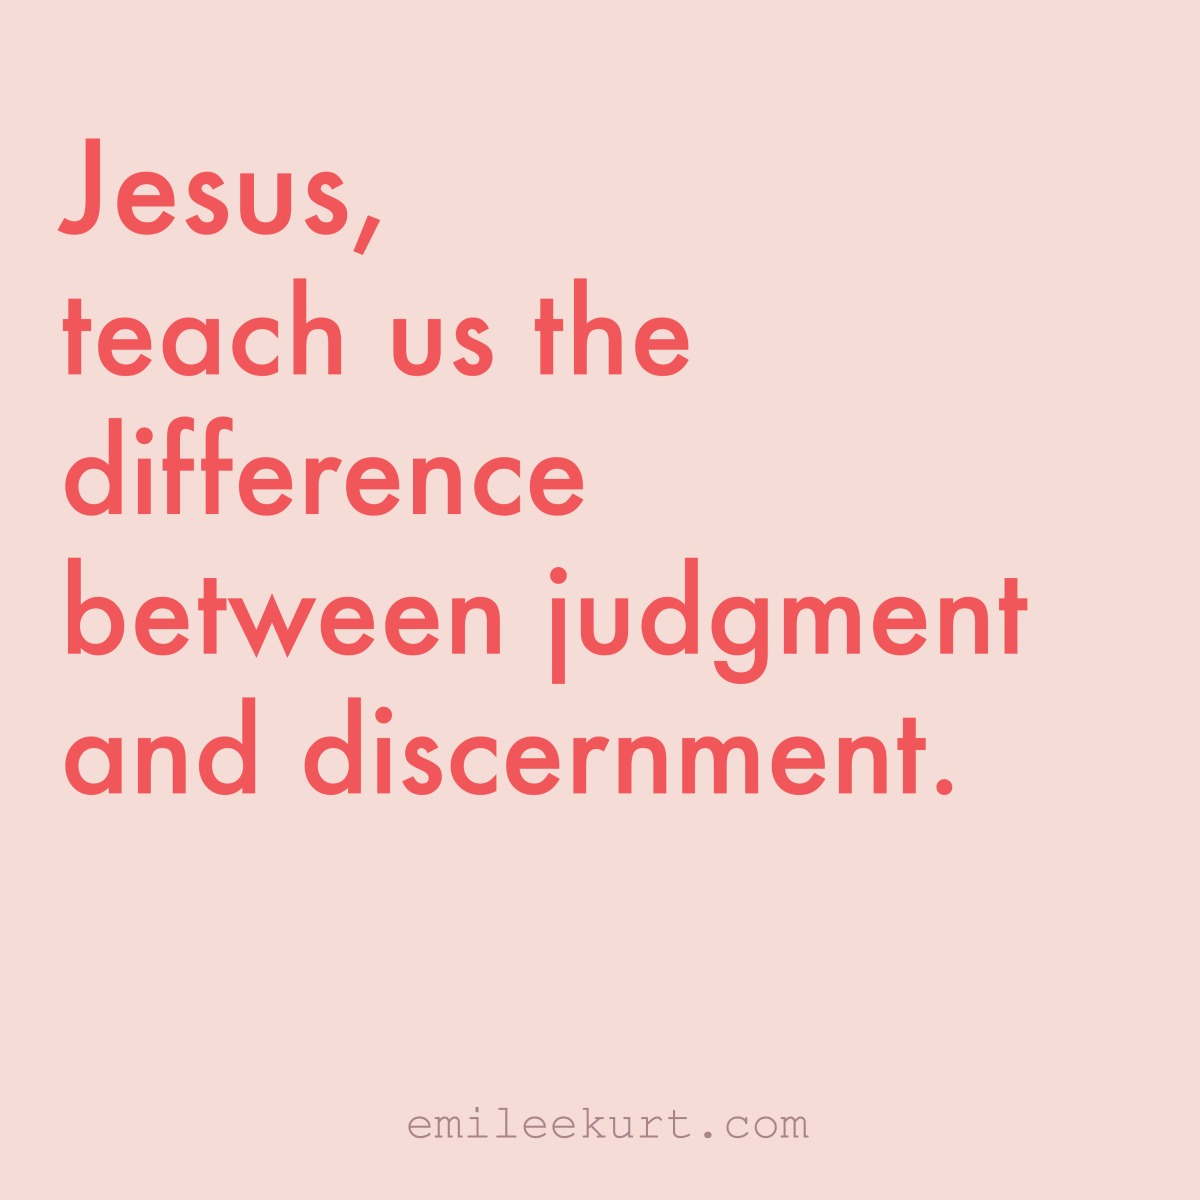 blog on judgment